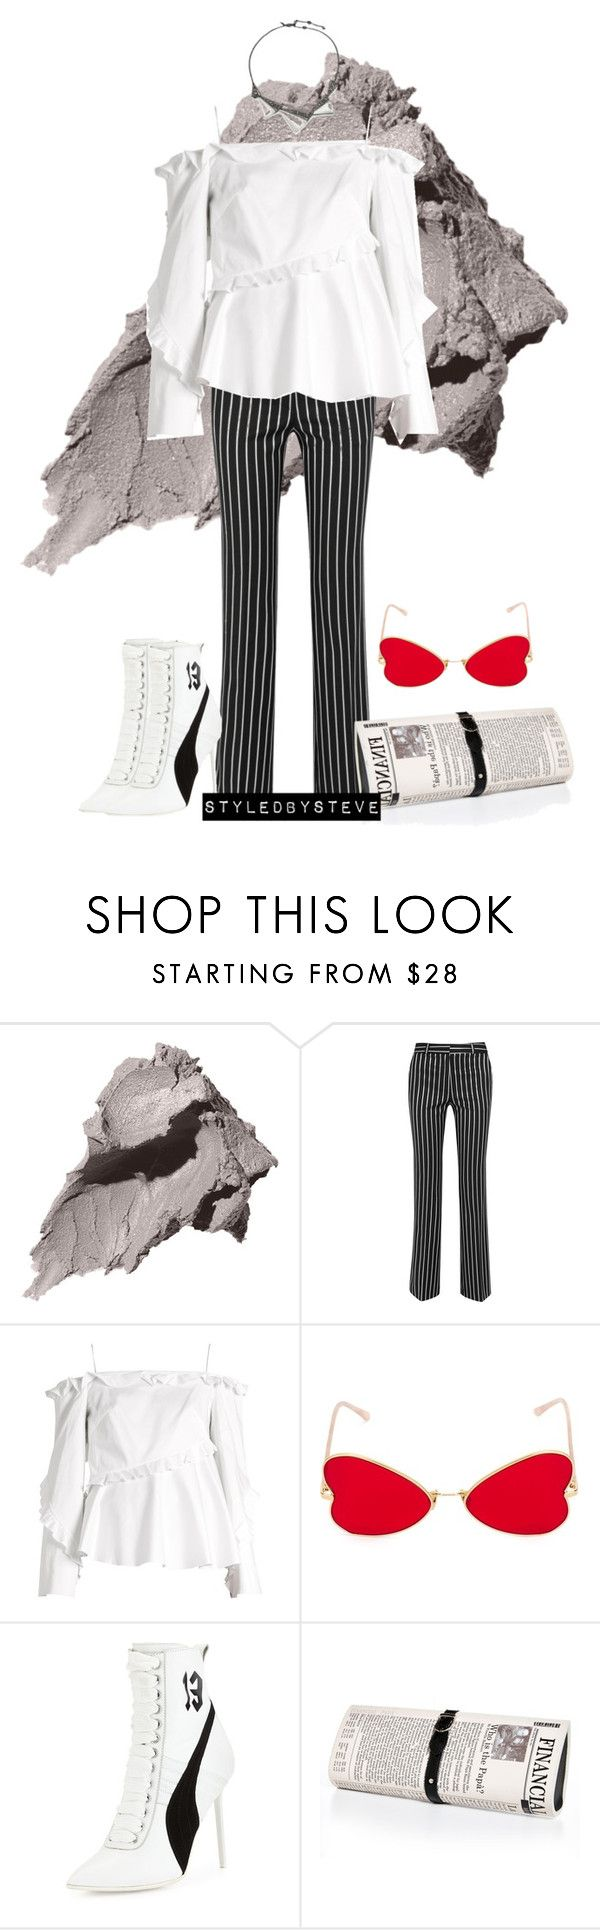 """Nobody's Business"" by styledbysteve ❤ liked on Polyvore featuring Bobbi Brown Cosmetics, Paul & Joe, Anna October, RetroSuperFuture, Puma, Papà Razzi and Alexis Bittar"